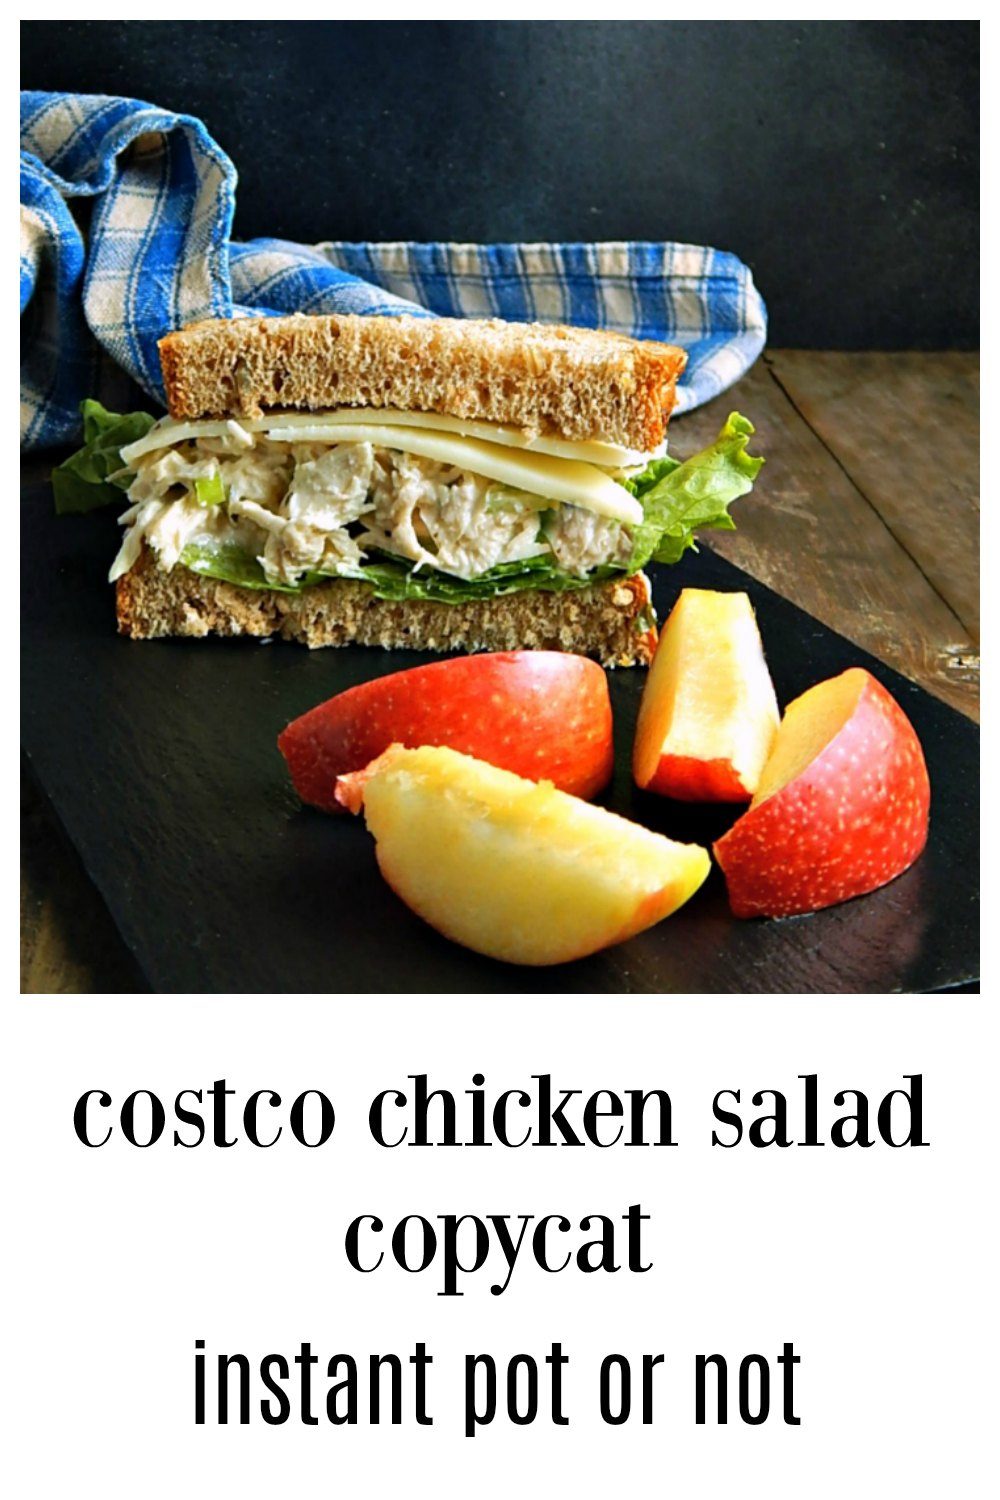 I fell in love with Costco's Chicken Salad - but not the ingredients. Check out my easy Copycat Costco Chicken Salad made in the Instant Pot or Not! This is a fantastic, Old Fashioned Chicken Salad - and it's easy! It's a great recipe to use rotisserie chicken, leftover chicken or leftover turkey, too! #CostcoChickenSalad #CostcoChickenSaladInstantPot #ChickenSalad